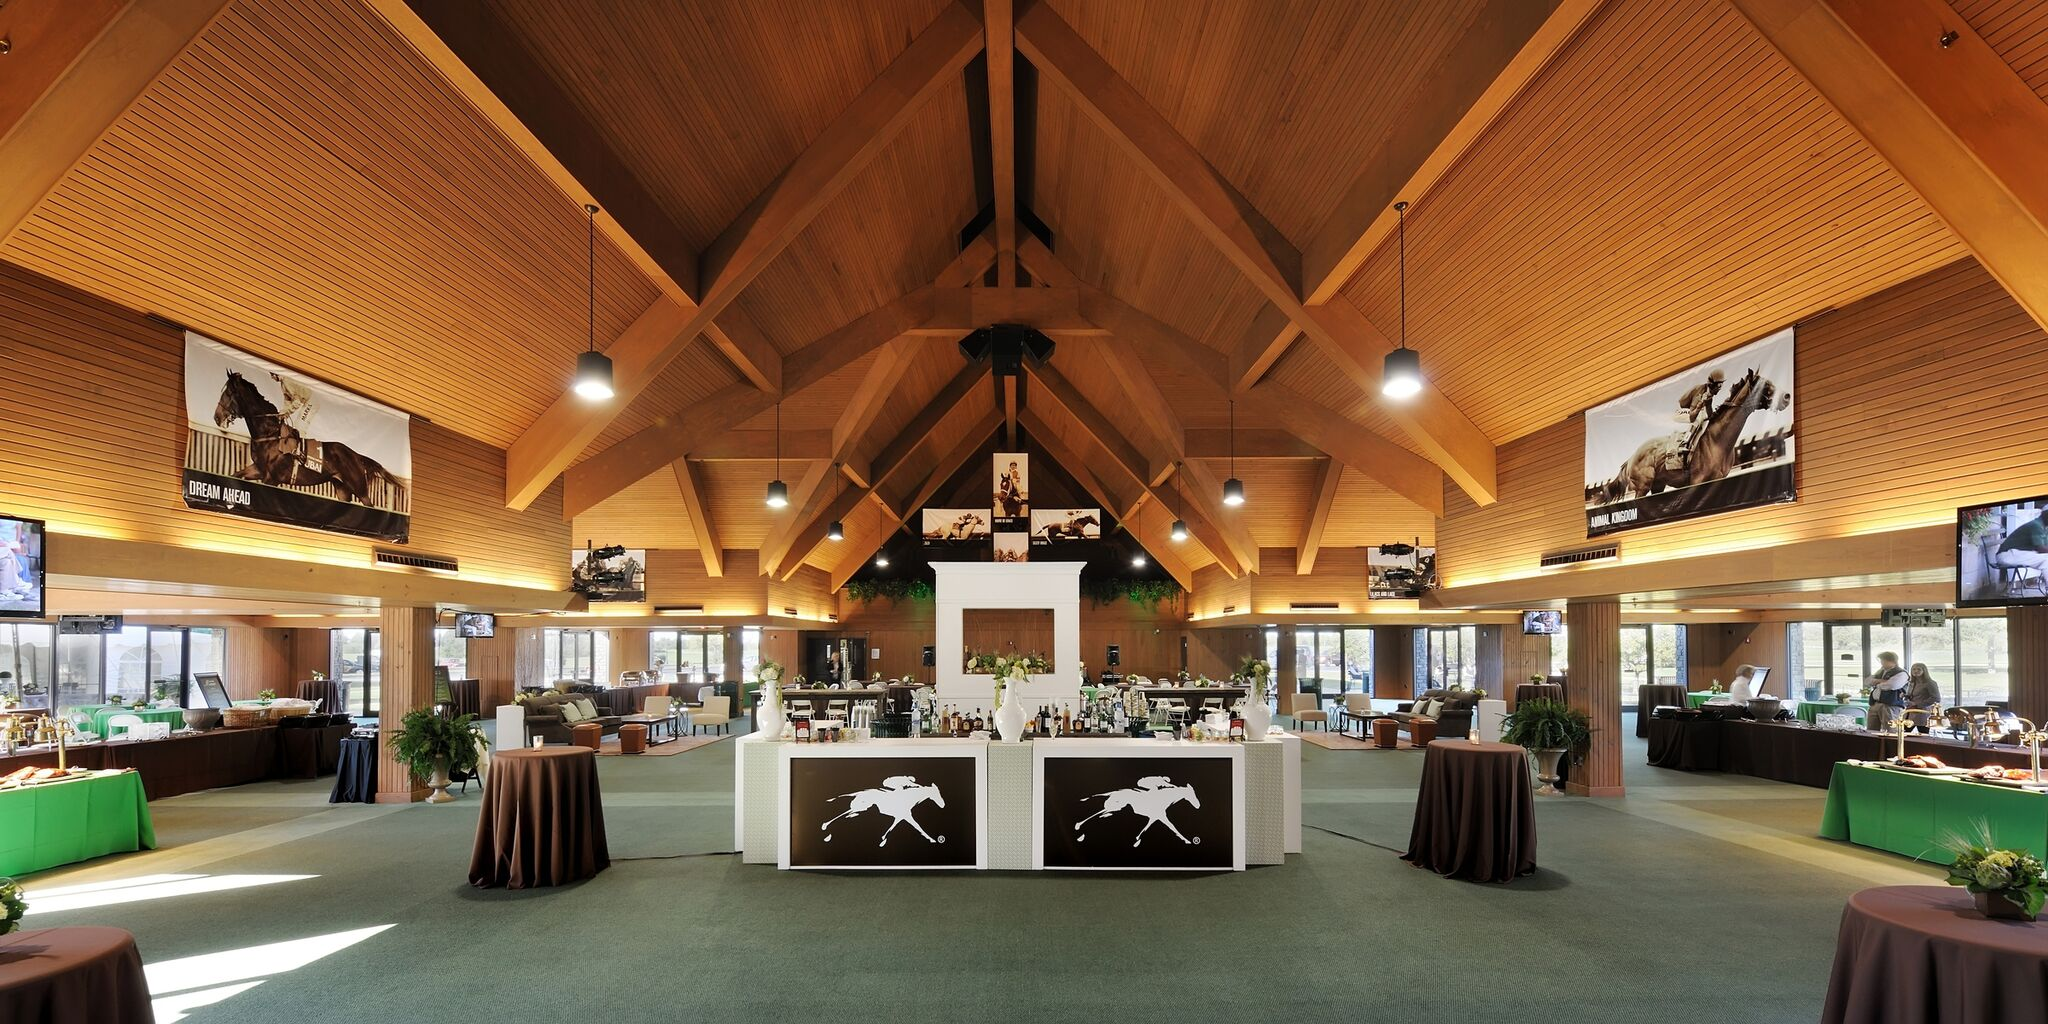 Event at Keeneland Entertainment Center